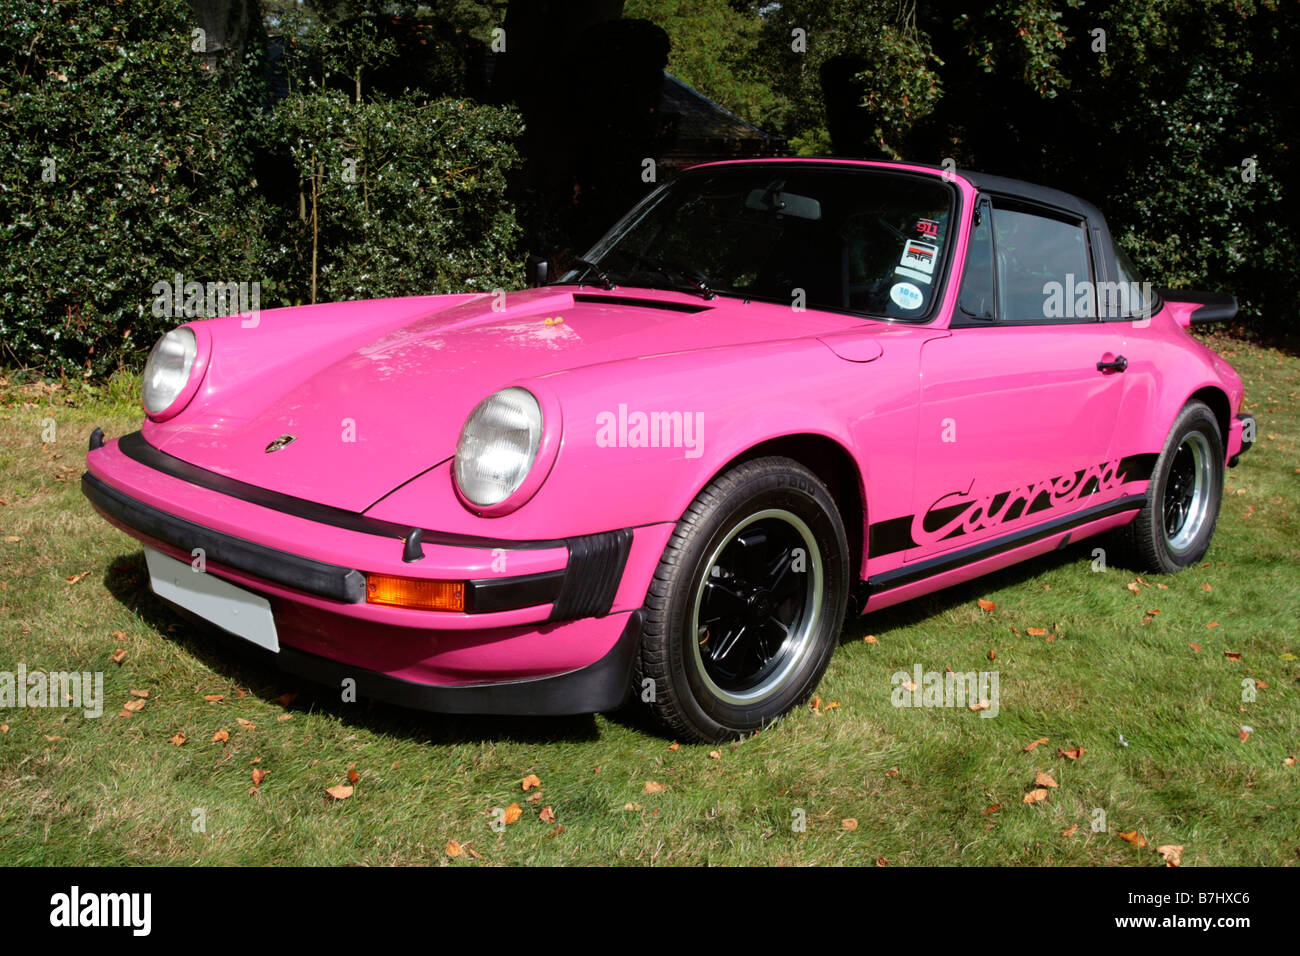 Pink Porsche 911 Carrera Iconic German Sports Car Parked By The Side Stock Photo Royalty Free